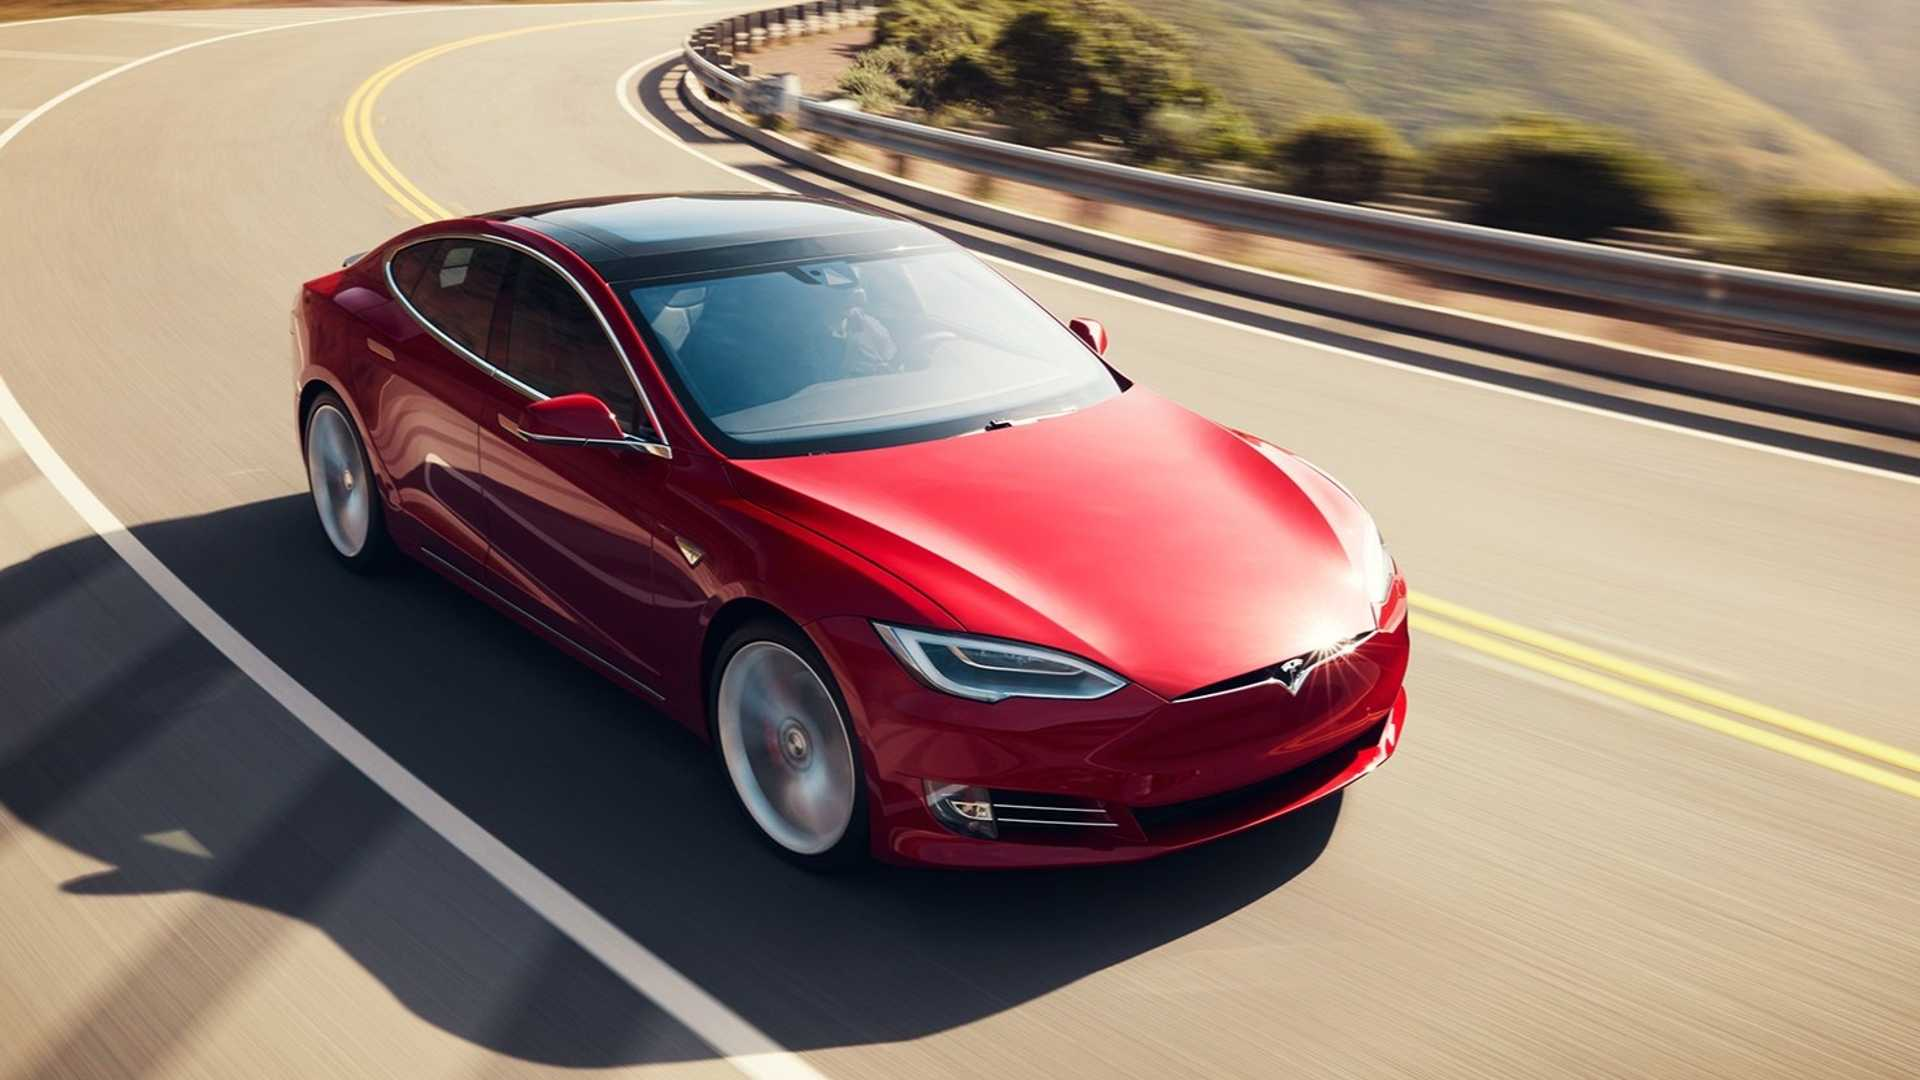 This Tesla Owner's Fascination Resulted In An Amazing Newsletter